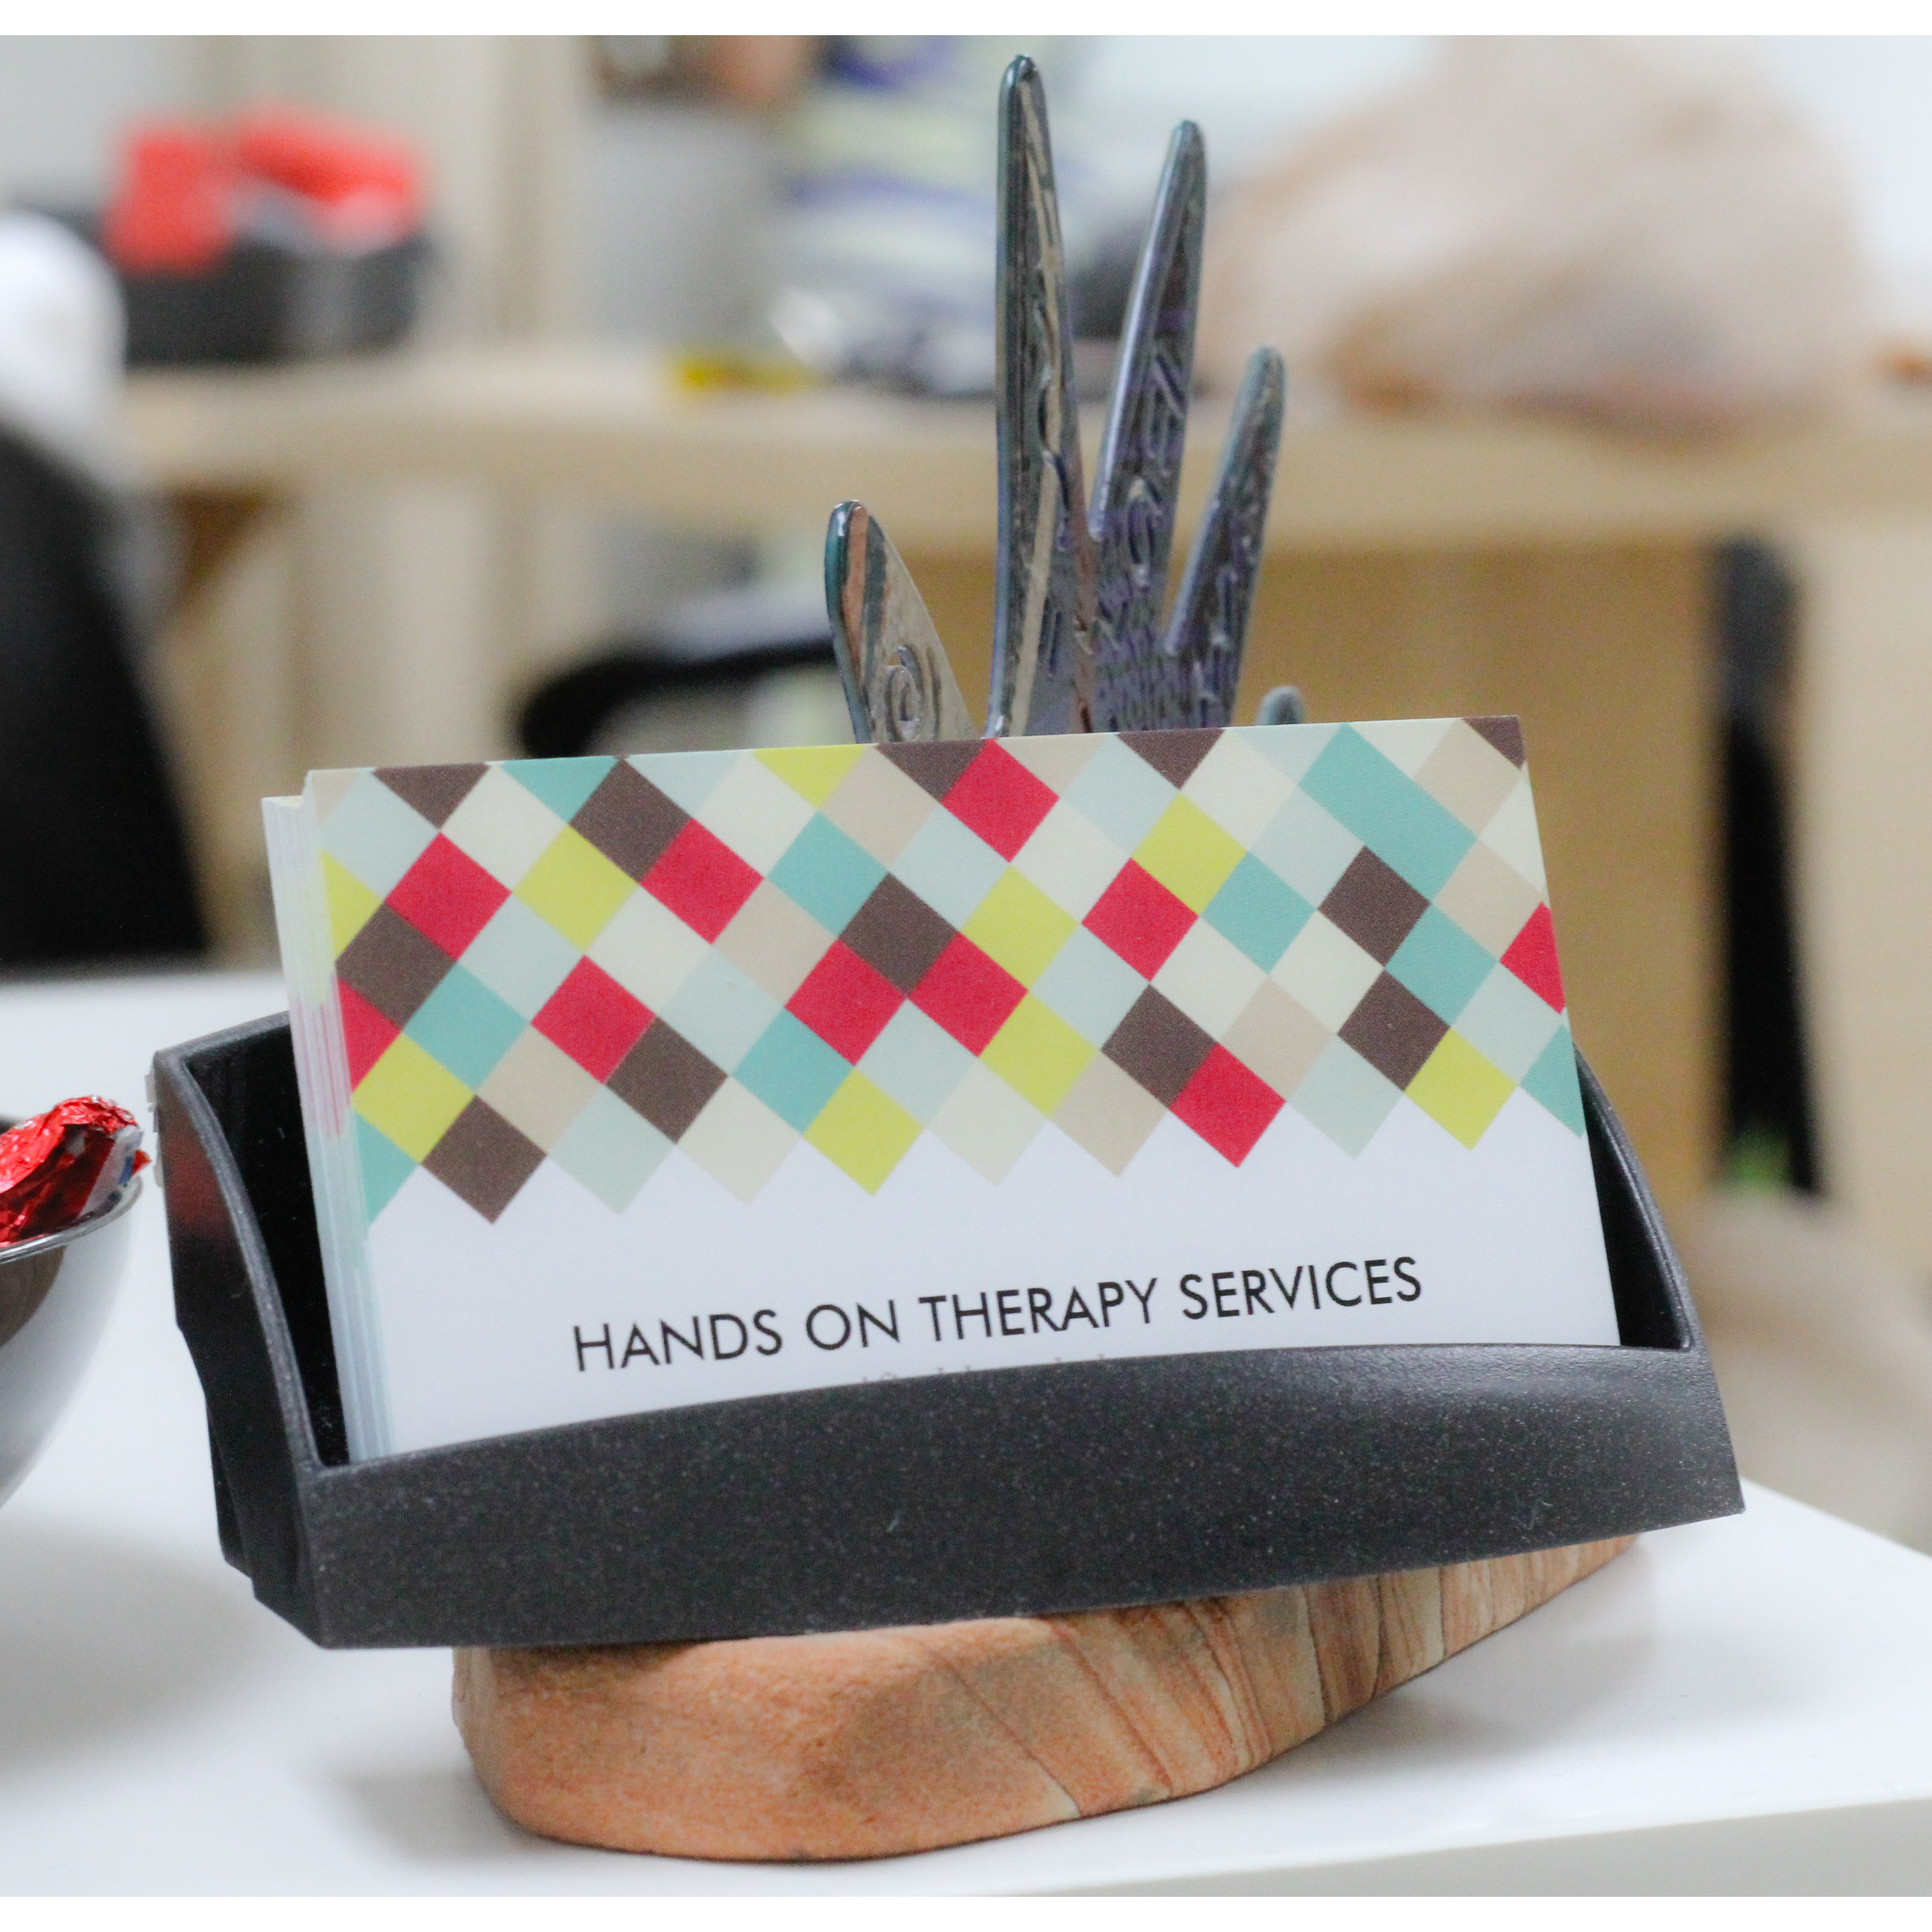 Hands On Therapy Services